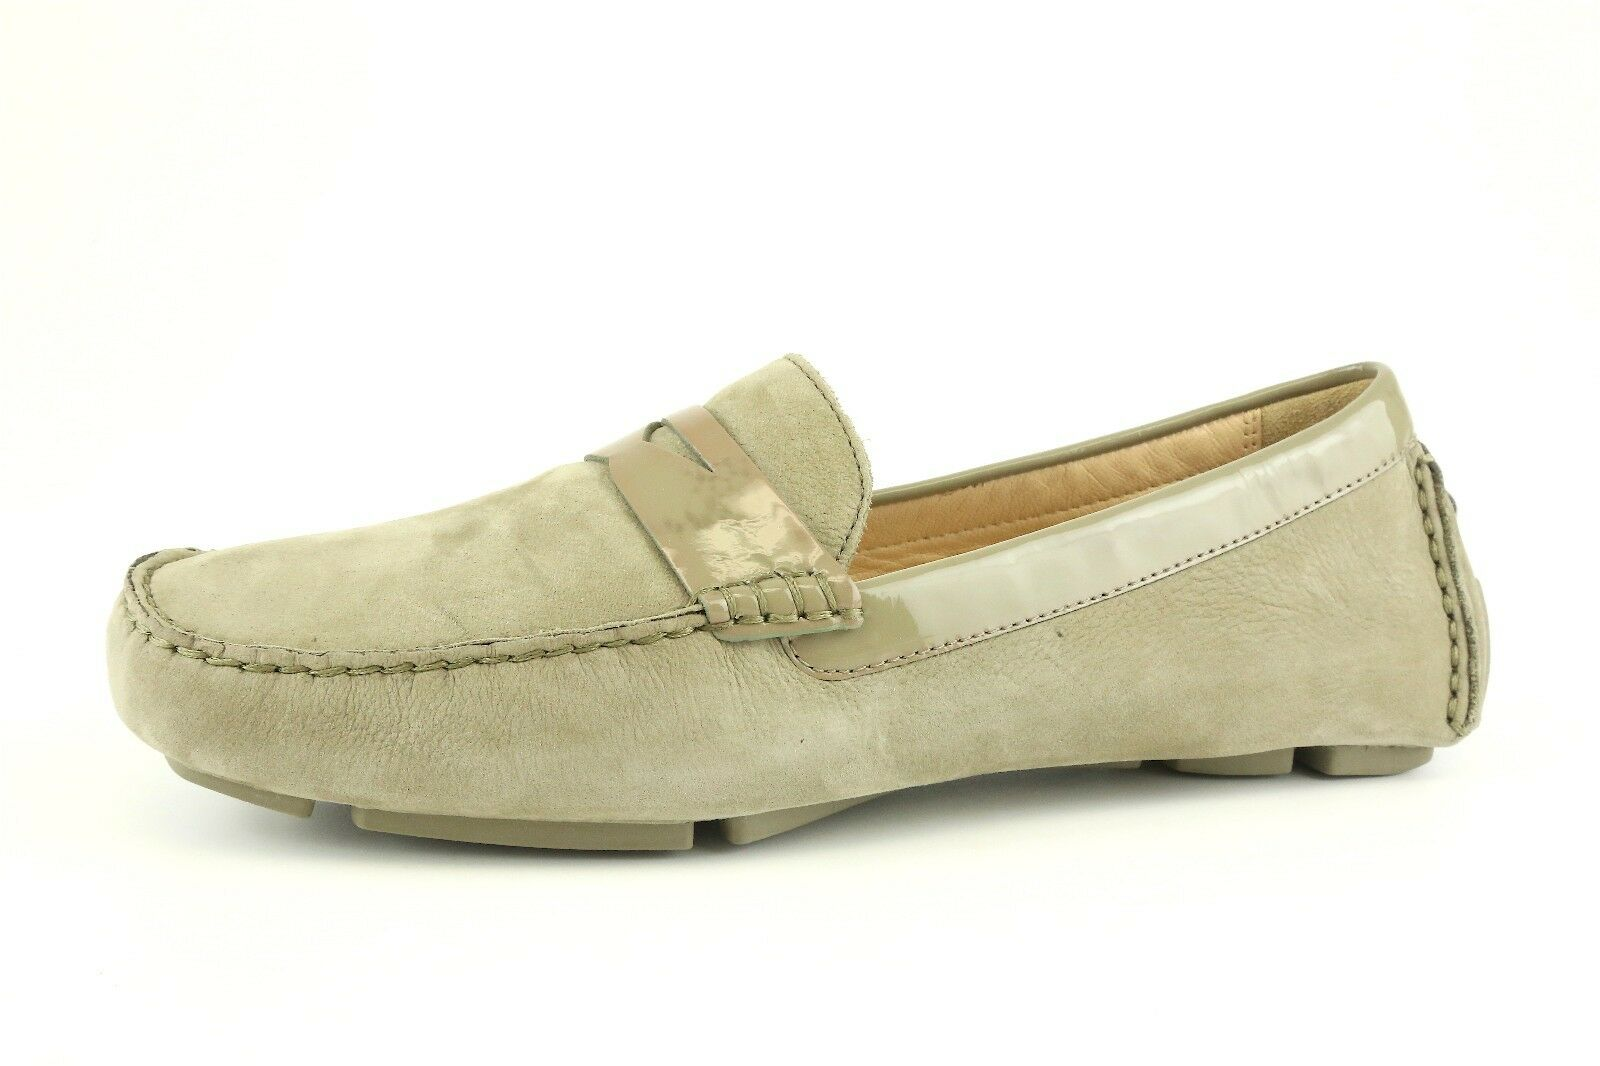 Cole Haan Women's Leather Penny Loafers 1902 Size 9M